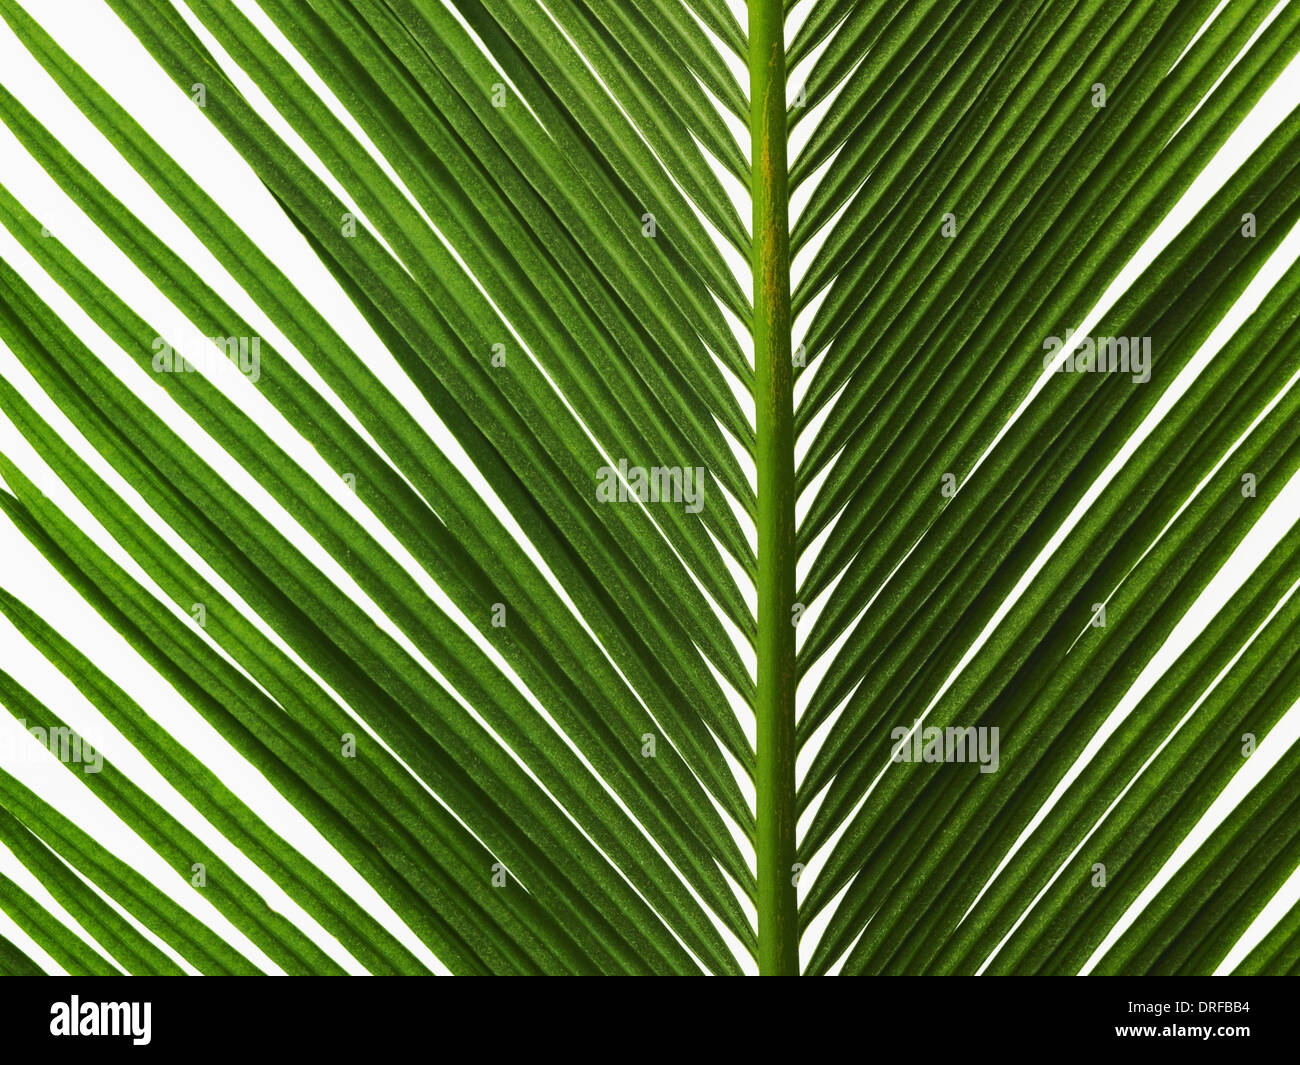 glossy green palm leaf close up with central rib - Stock Image